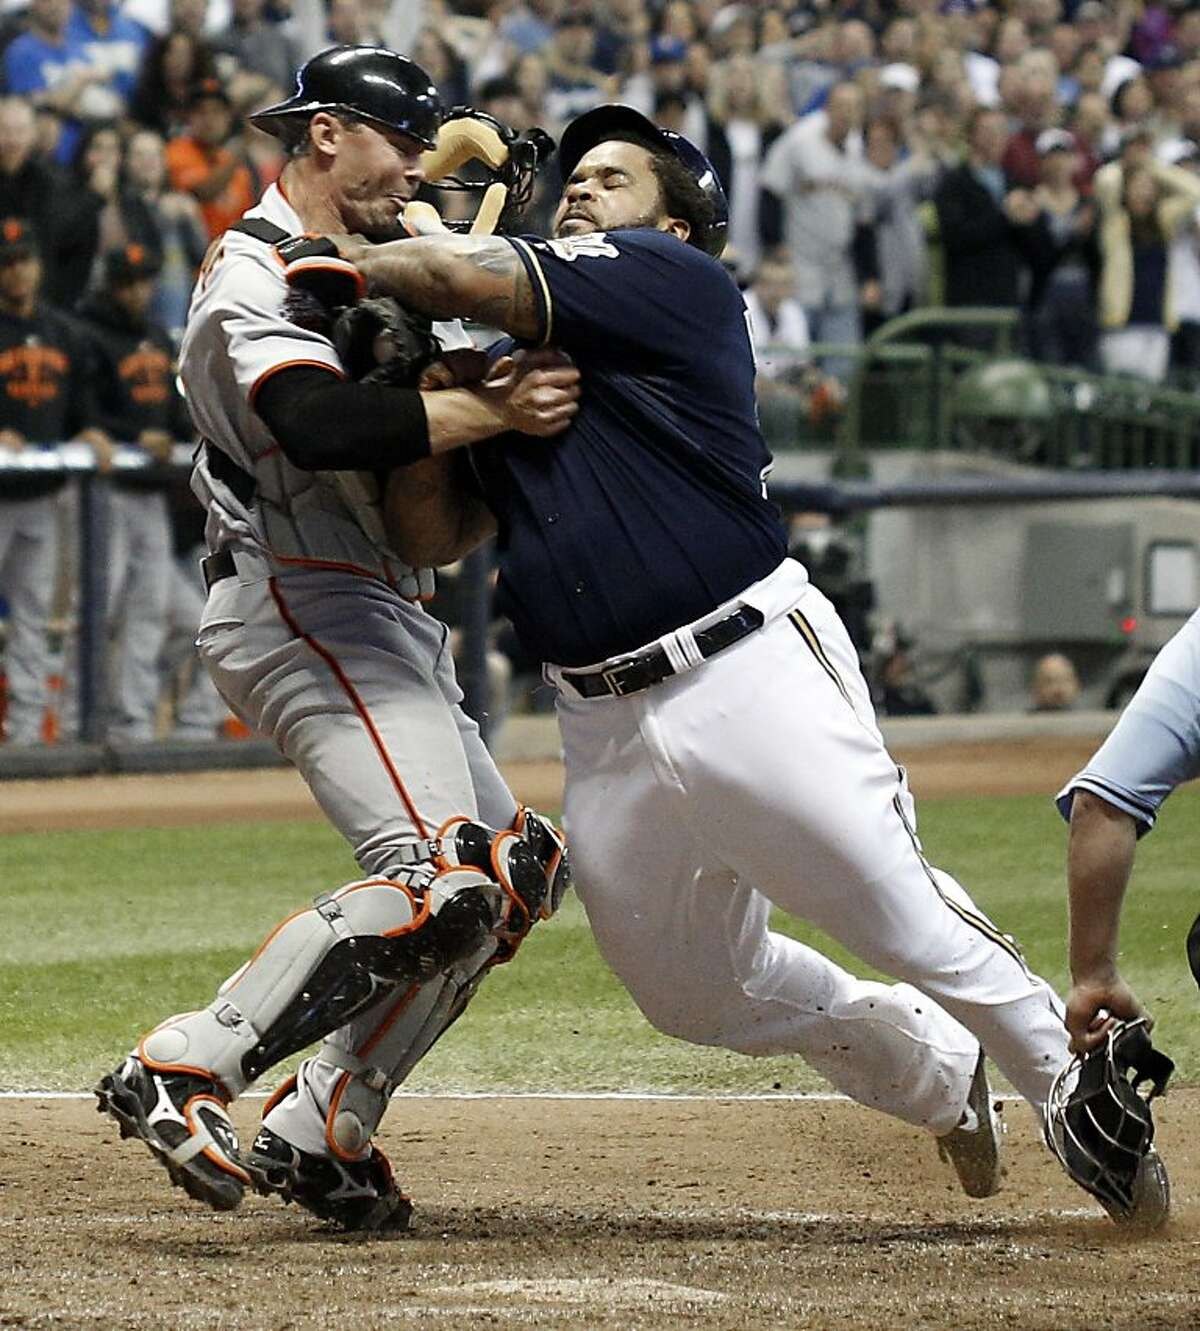 Milwaukee Brewers' Prince Fielder, right, is tagged out by San Francisco Giants catcher Eli Whiteside, left, while trying to score during the eighth inning of a baseball game Friday, May 27, 2011, in Milwaukee.